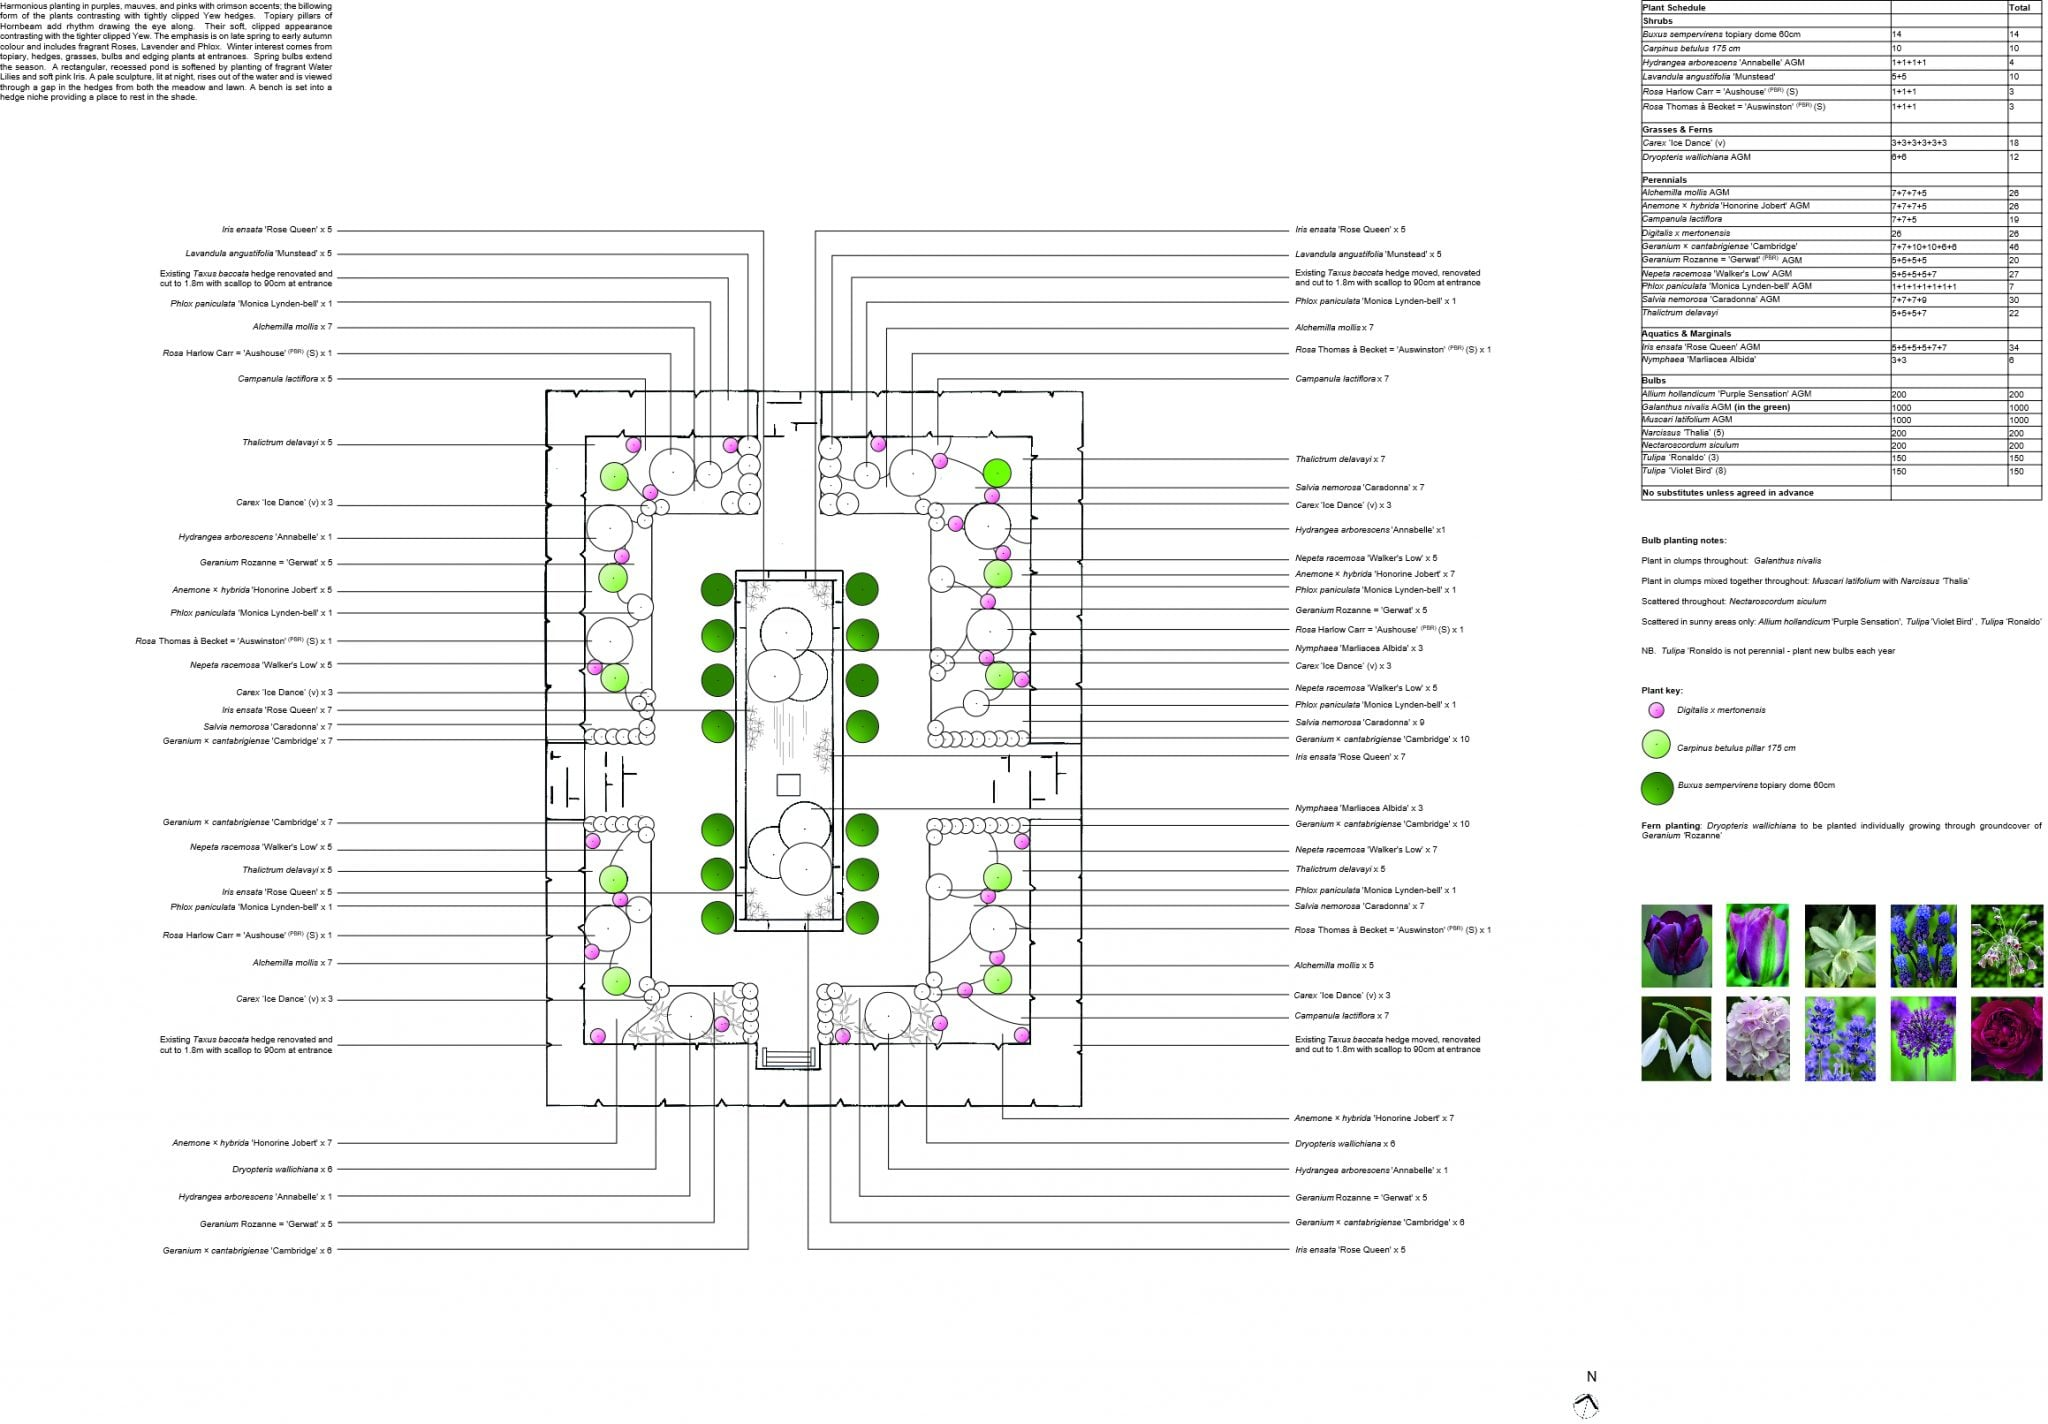 Planting Plan anon for website image